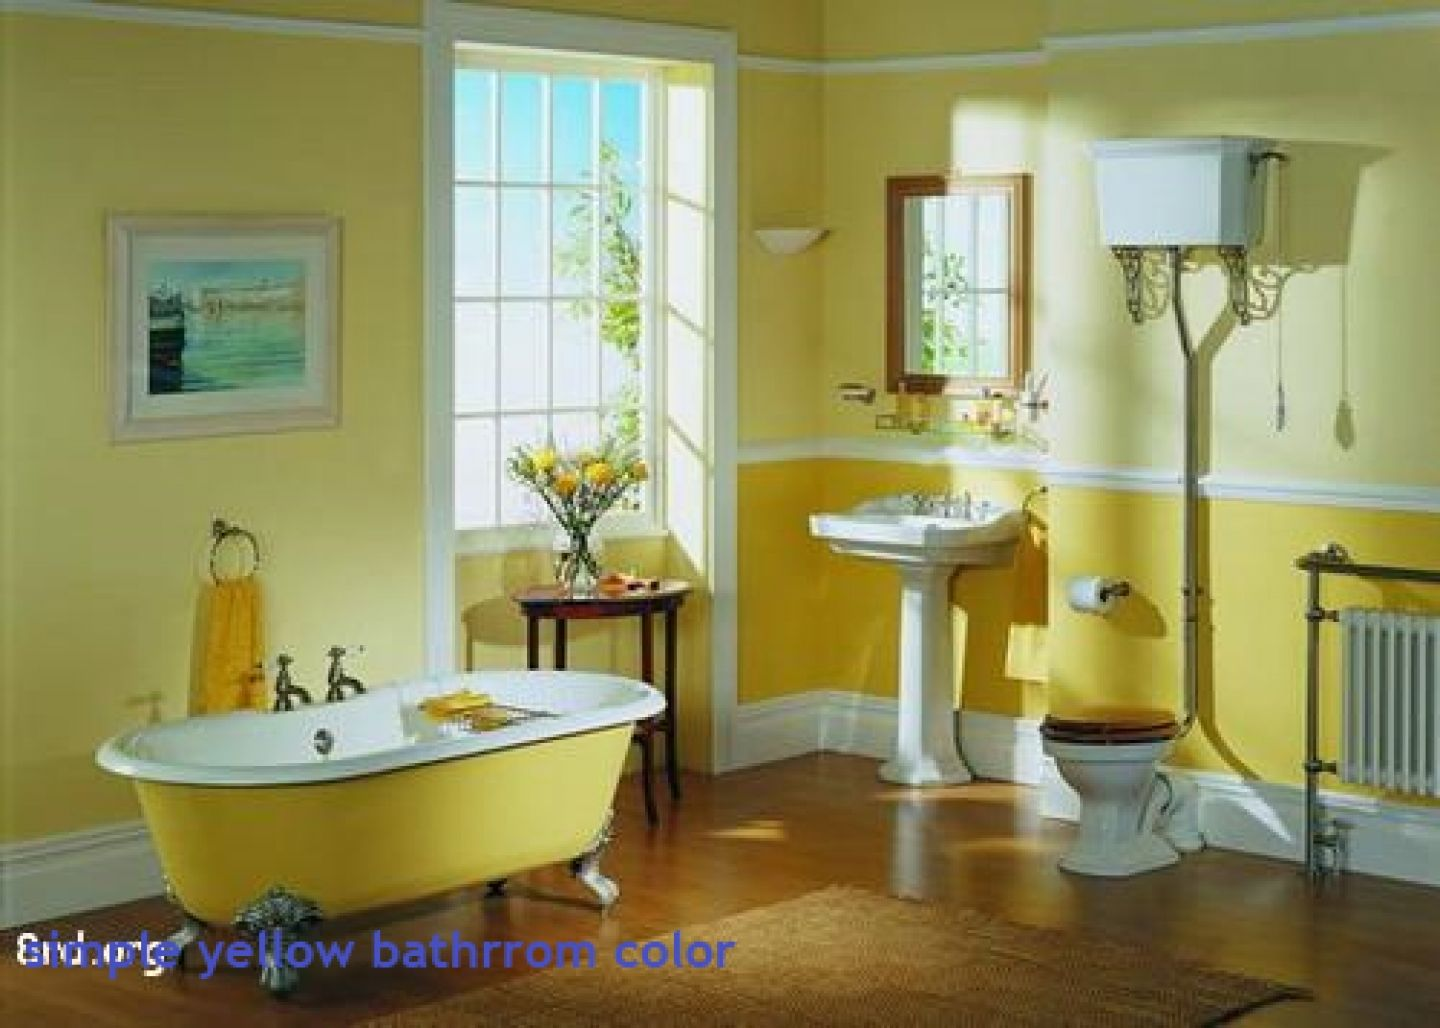 This vintage bath comes alive in lemon yellow and a deeper egg yolk ...